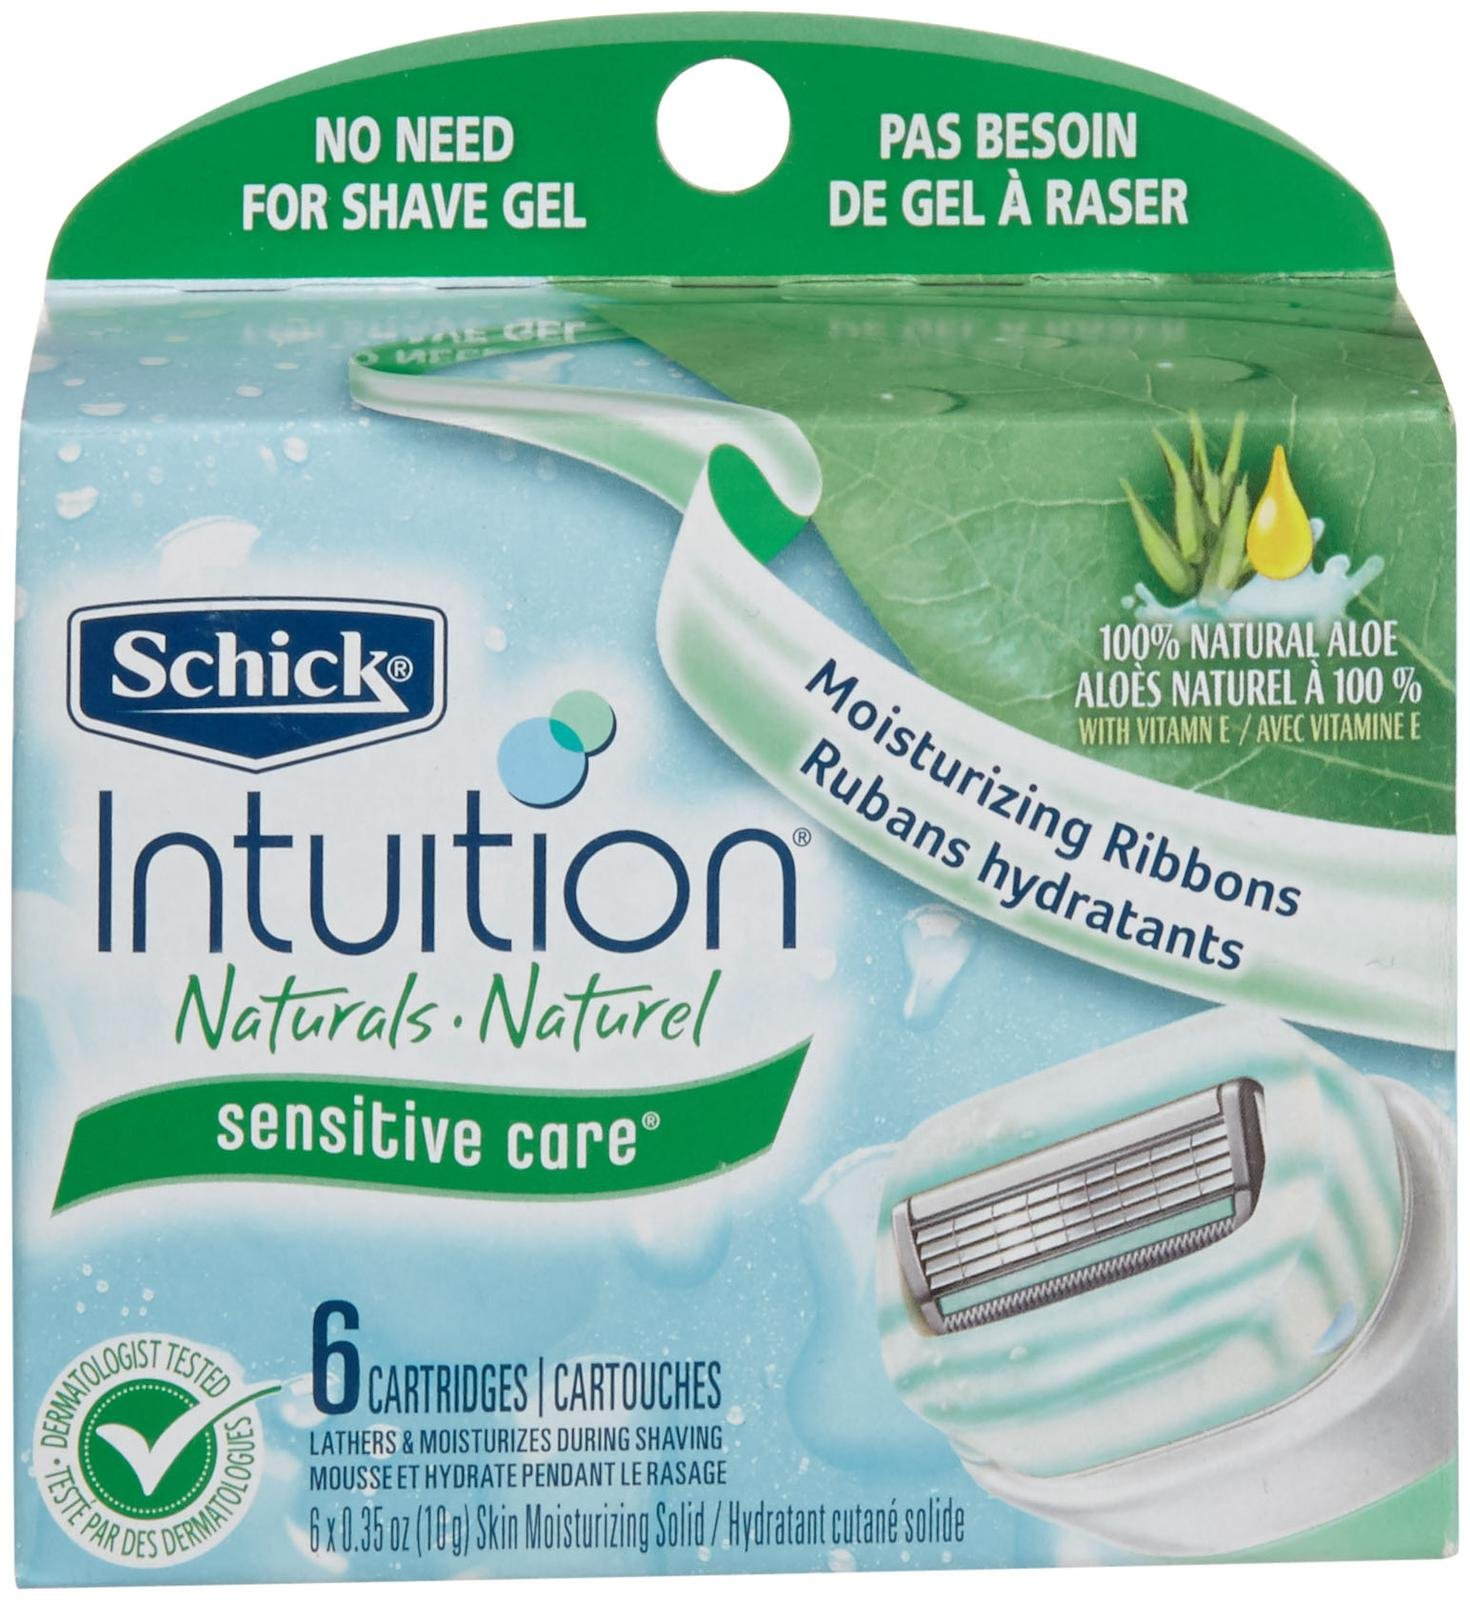 Schick Intuition Naturals Sensitive Care Razor Cartridges, 6 count